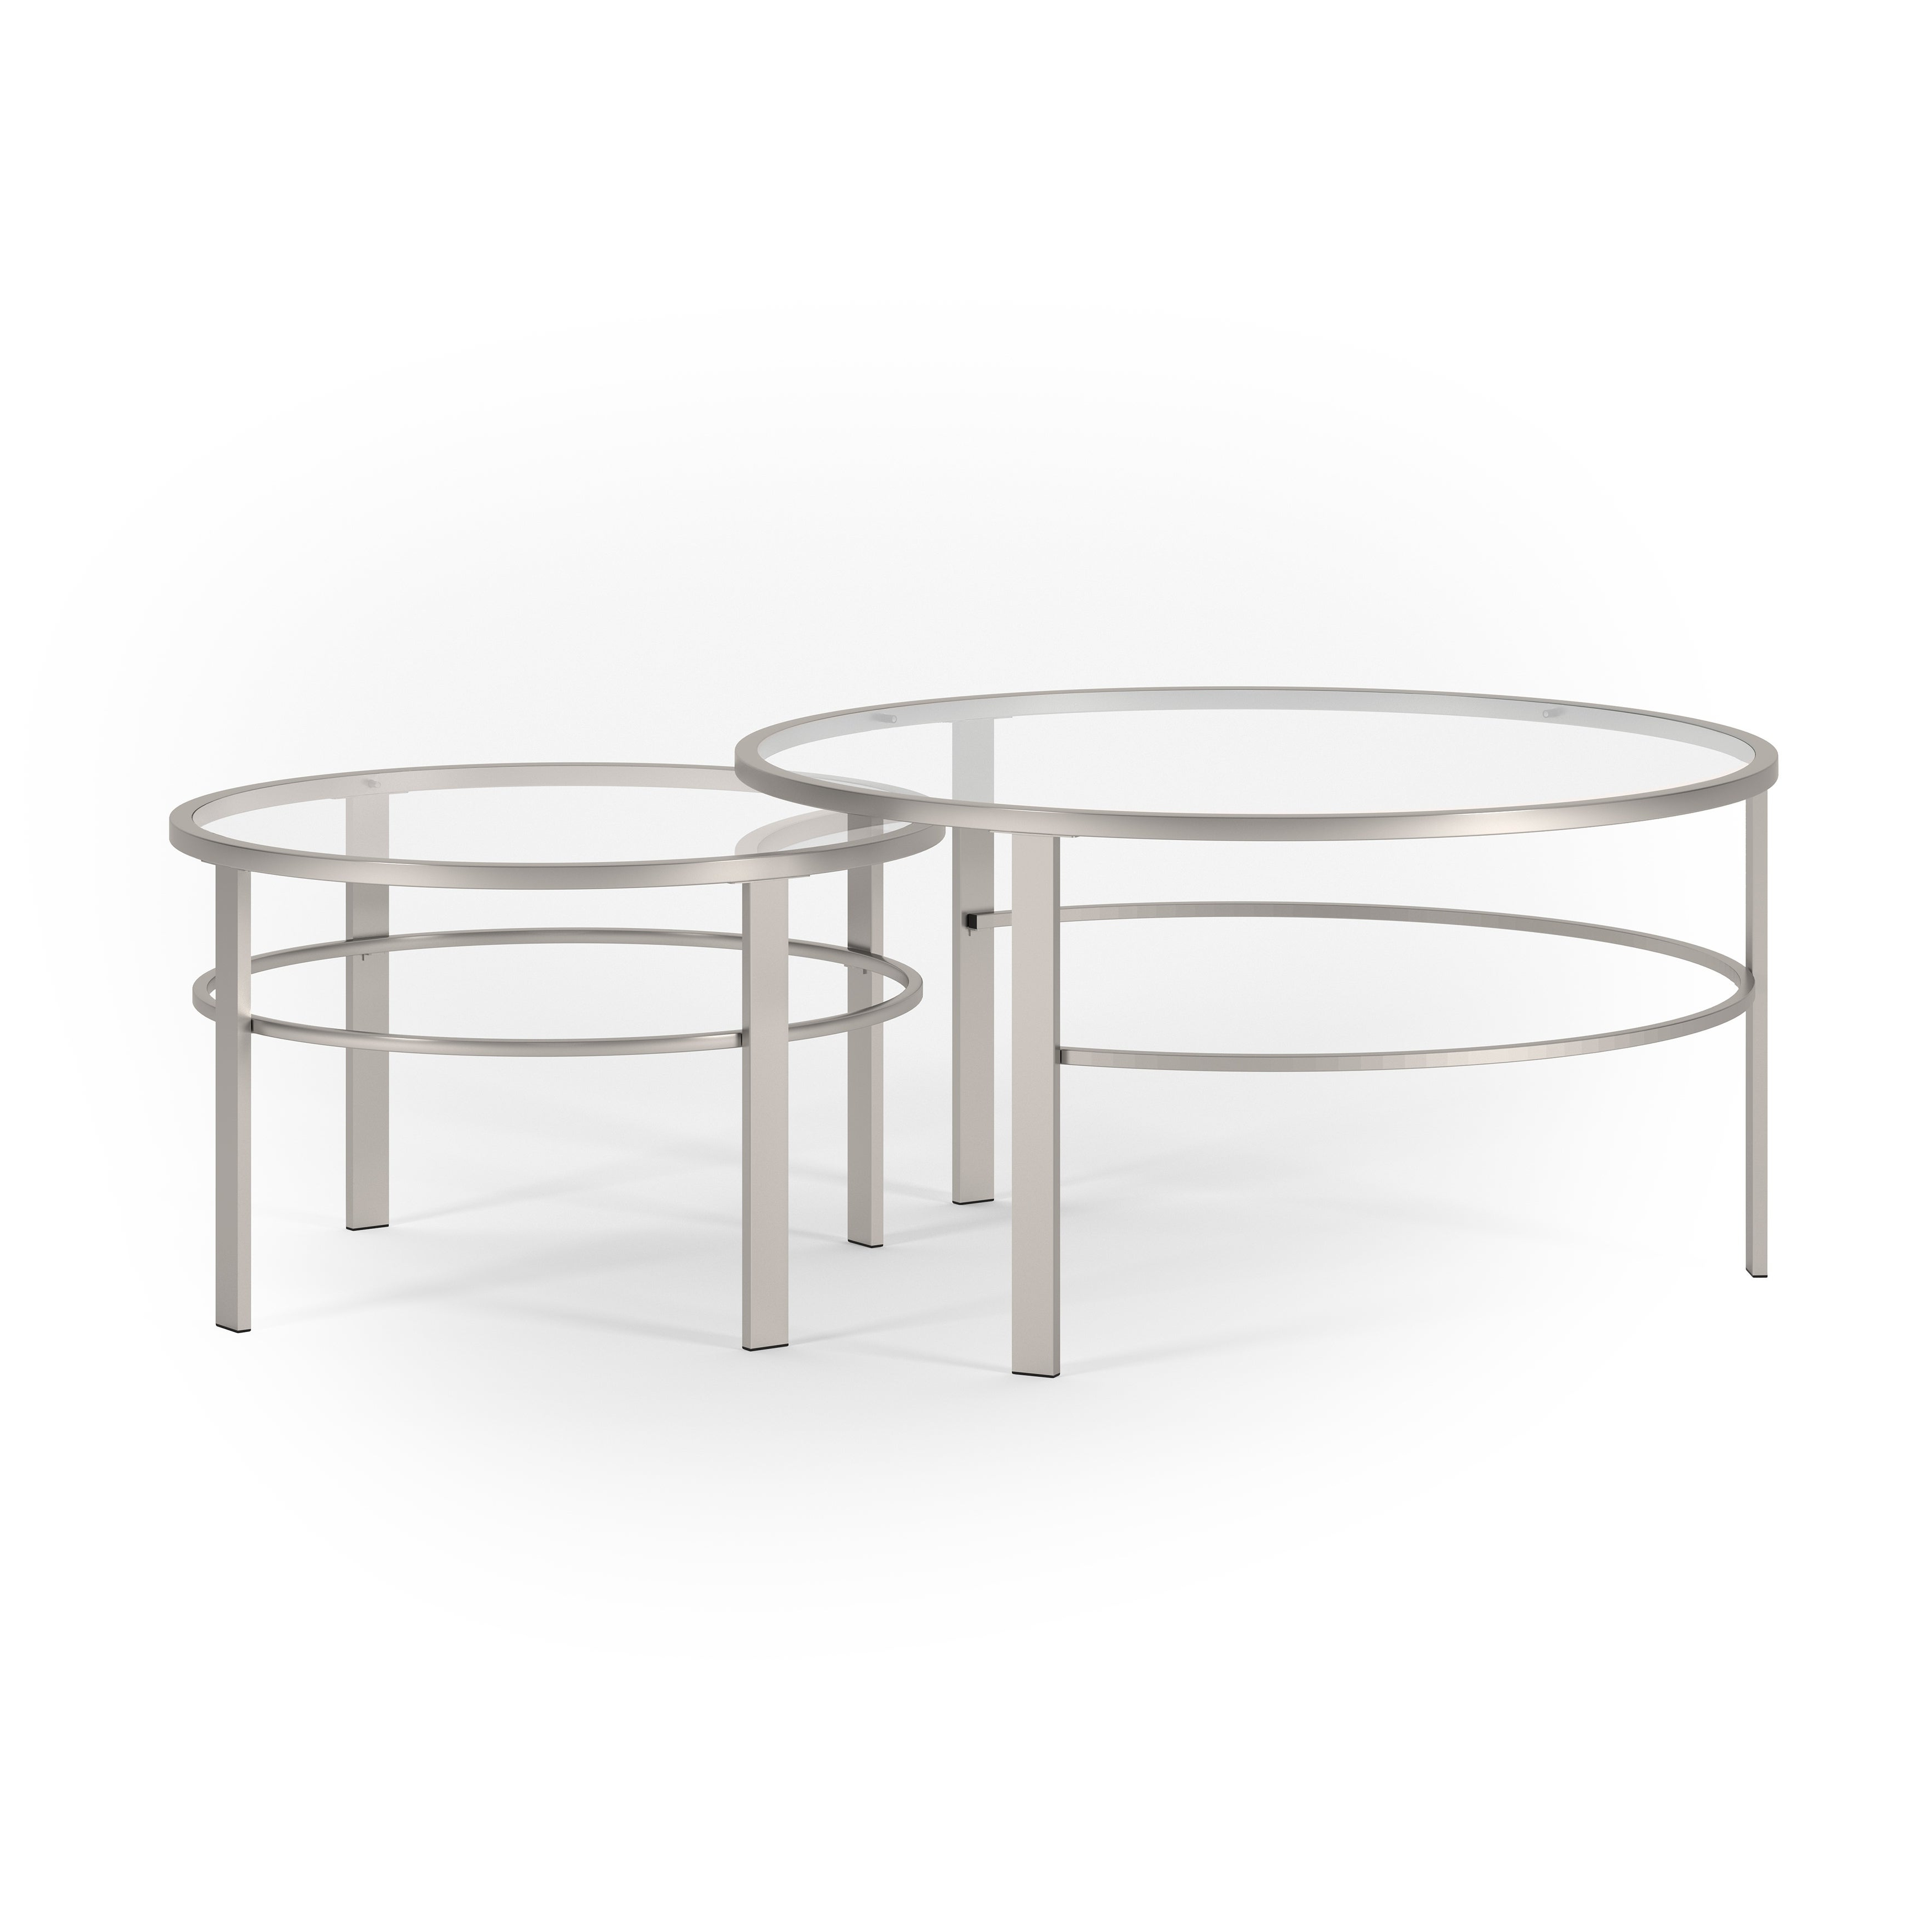 Gaia Round Metal/ Tempered Glass Nesting Coffee Tables – 2 Pc Set In Silver  Nickel Finish Throughout Famous Mitera Round Metal Glass Nesting Coffee Tables (View 5 of 20)